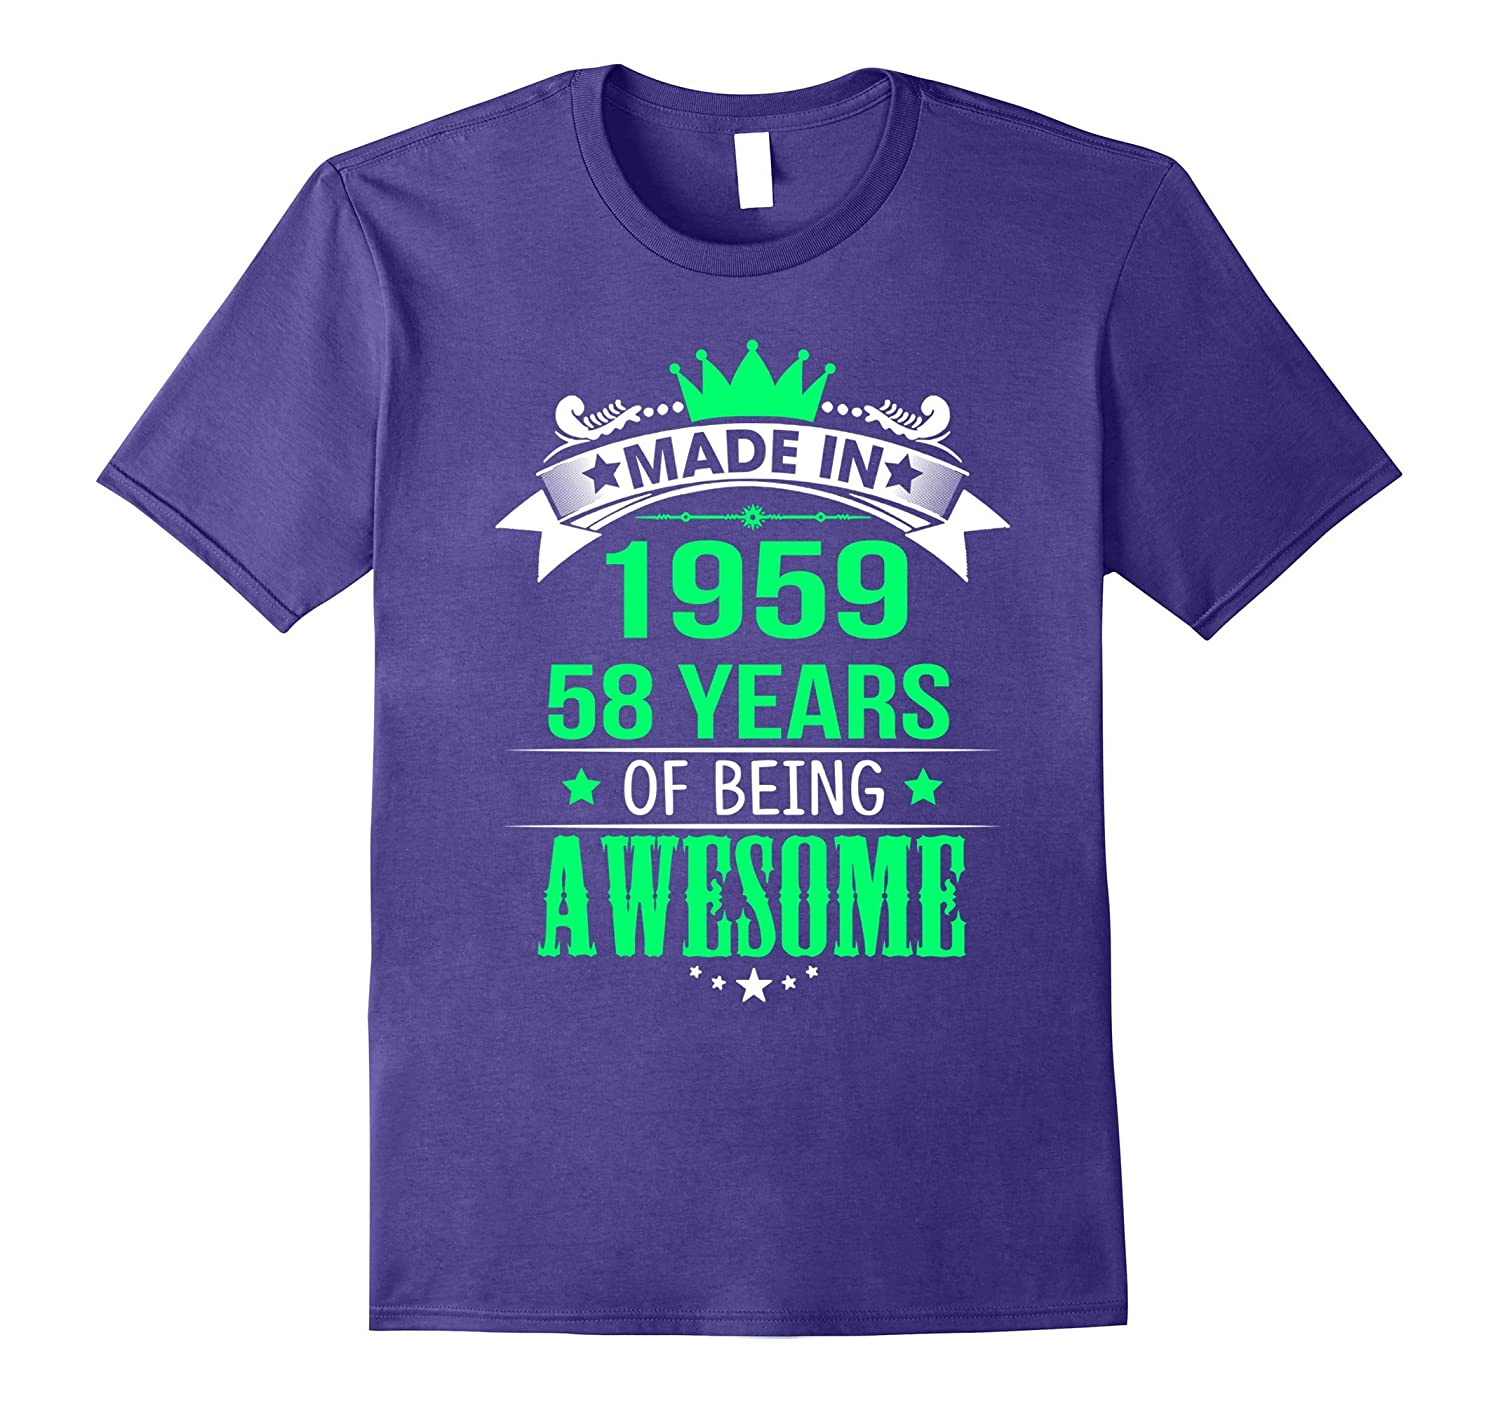 58th Birthday Shirt. Happy Birthday Shirts For Men/Women.-Art